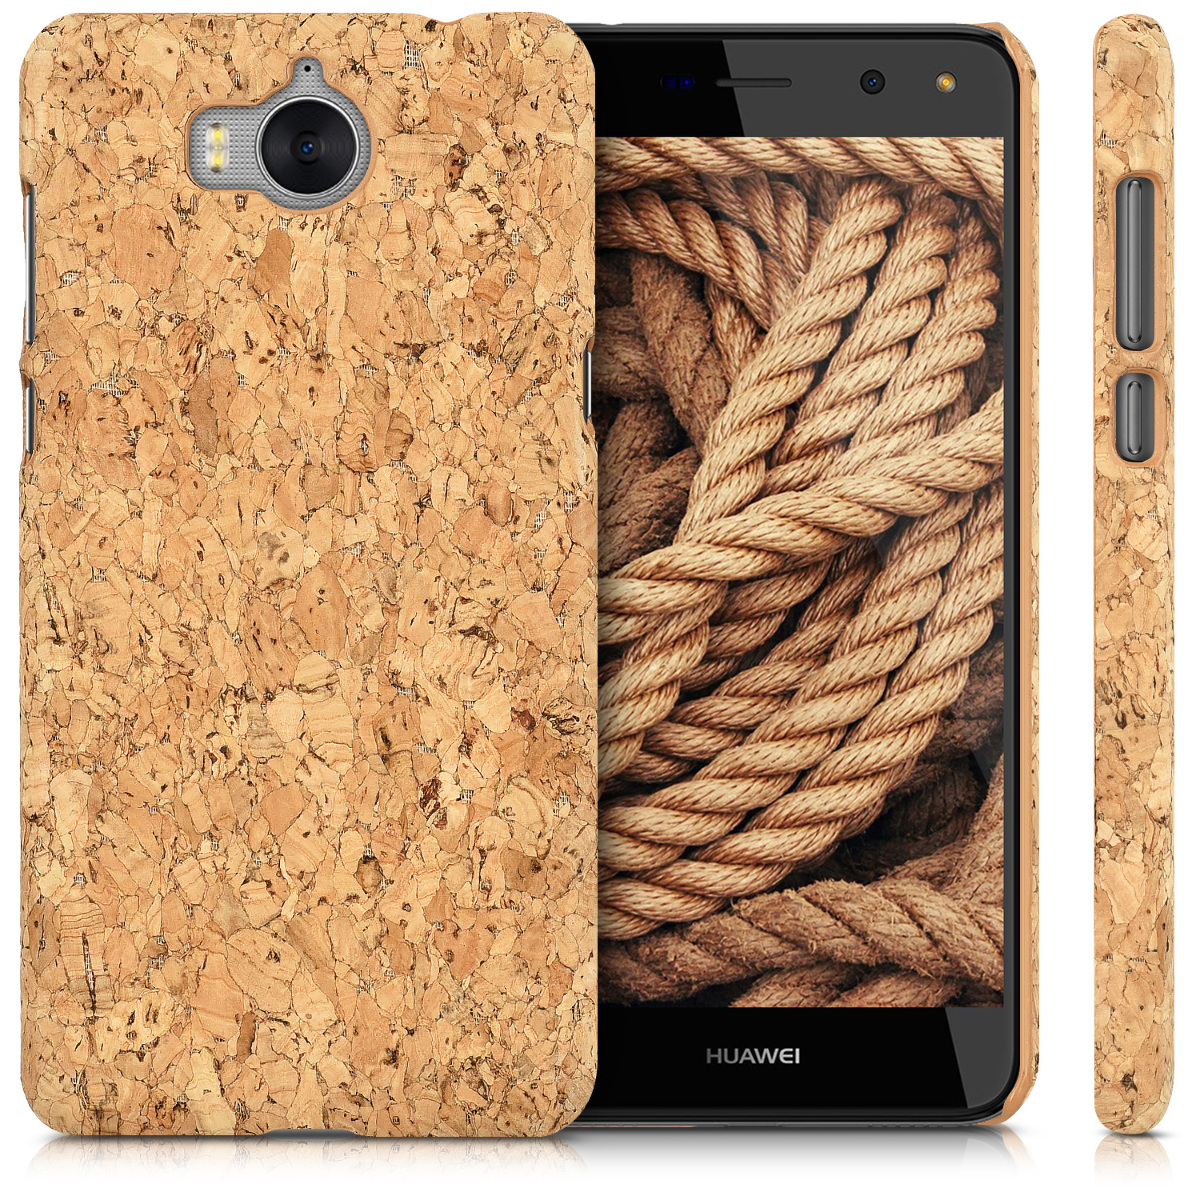 kwmobile-COQUE-DURE-AVEC-LIEGE-POUR-HUAWEI-Y6-2017-COVER-HOUSSE-PROTECTION